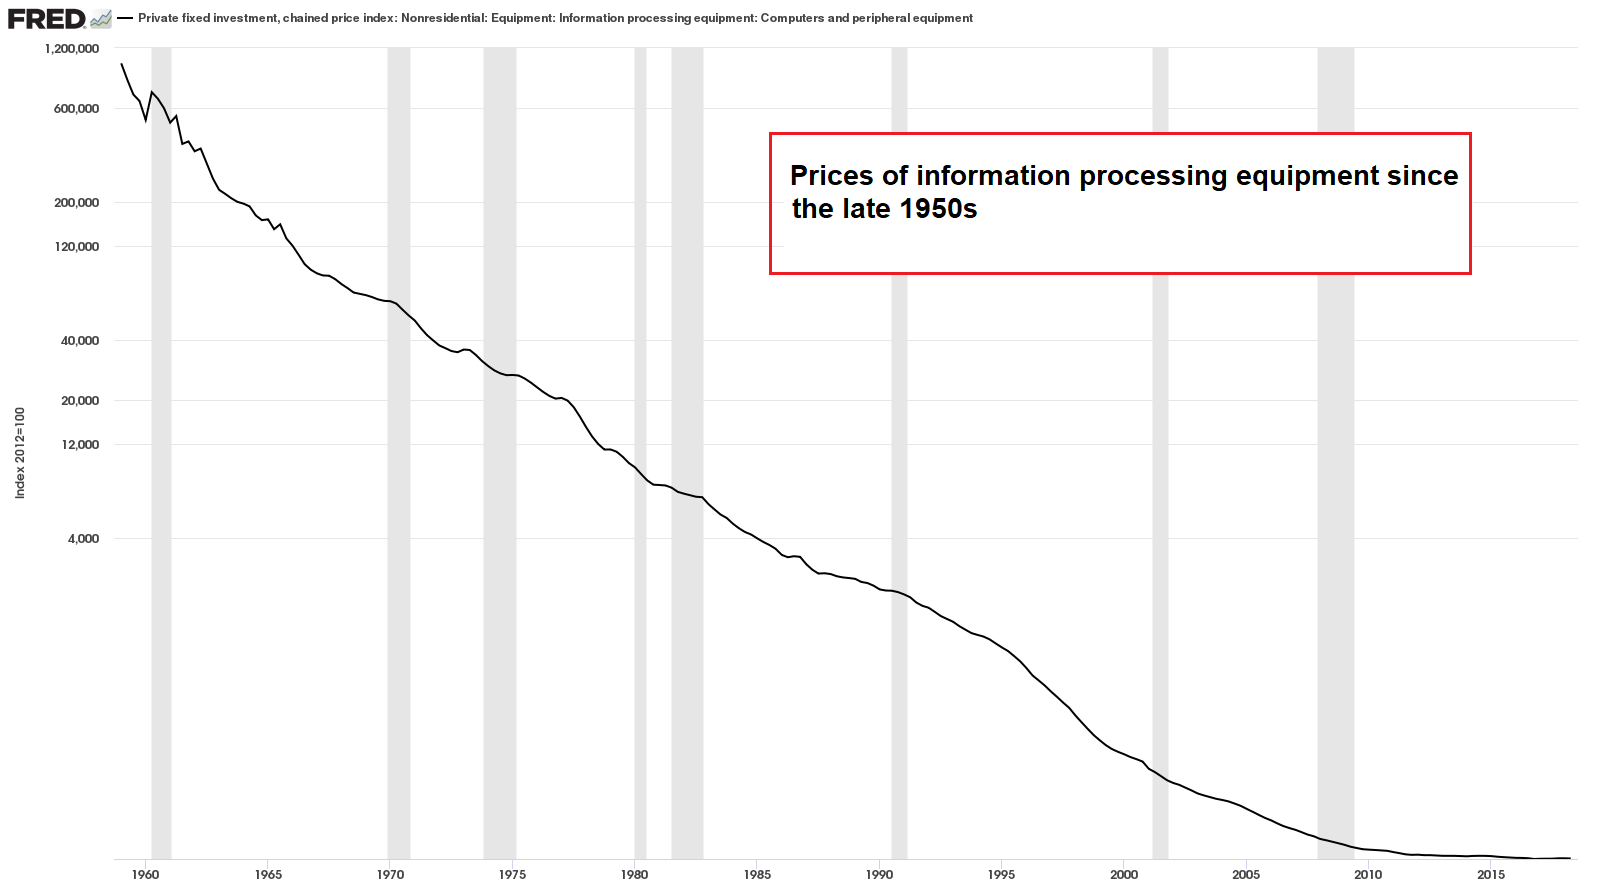 Prices of IT equipment since the late 1950s